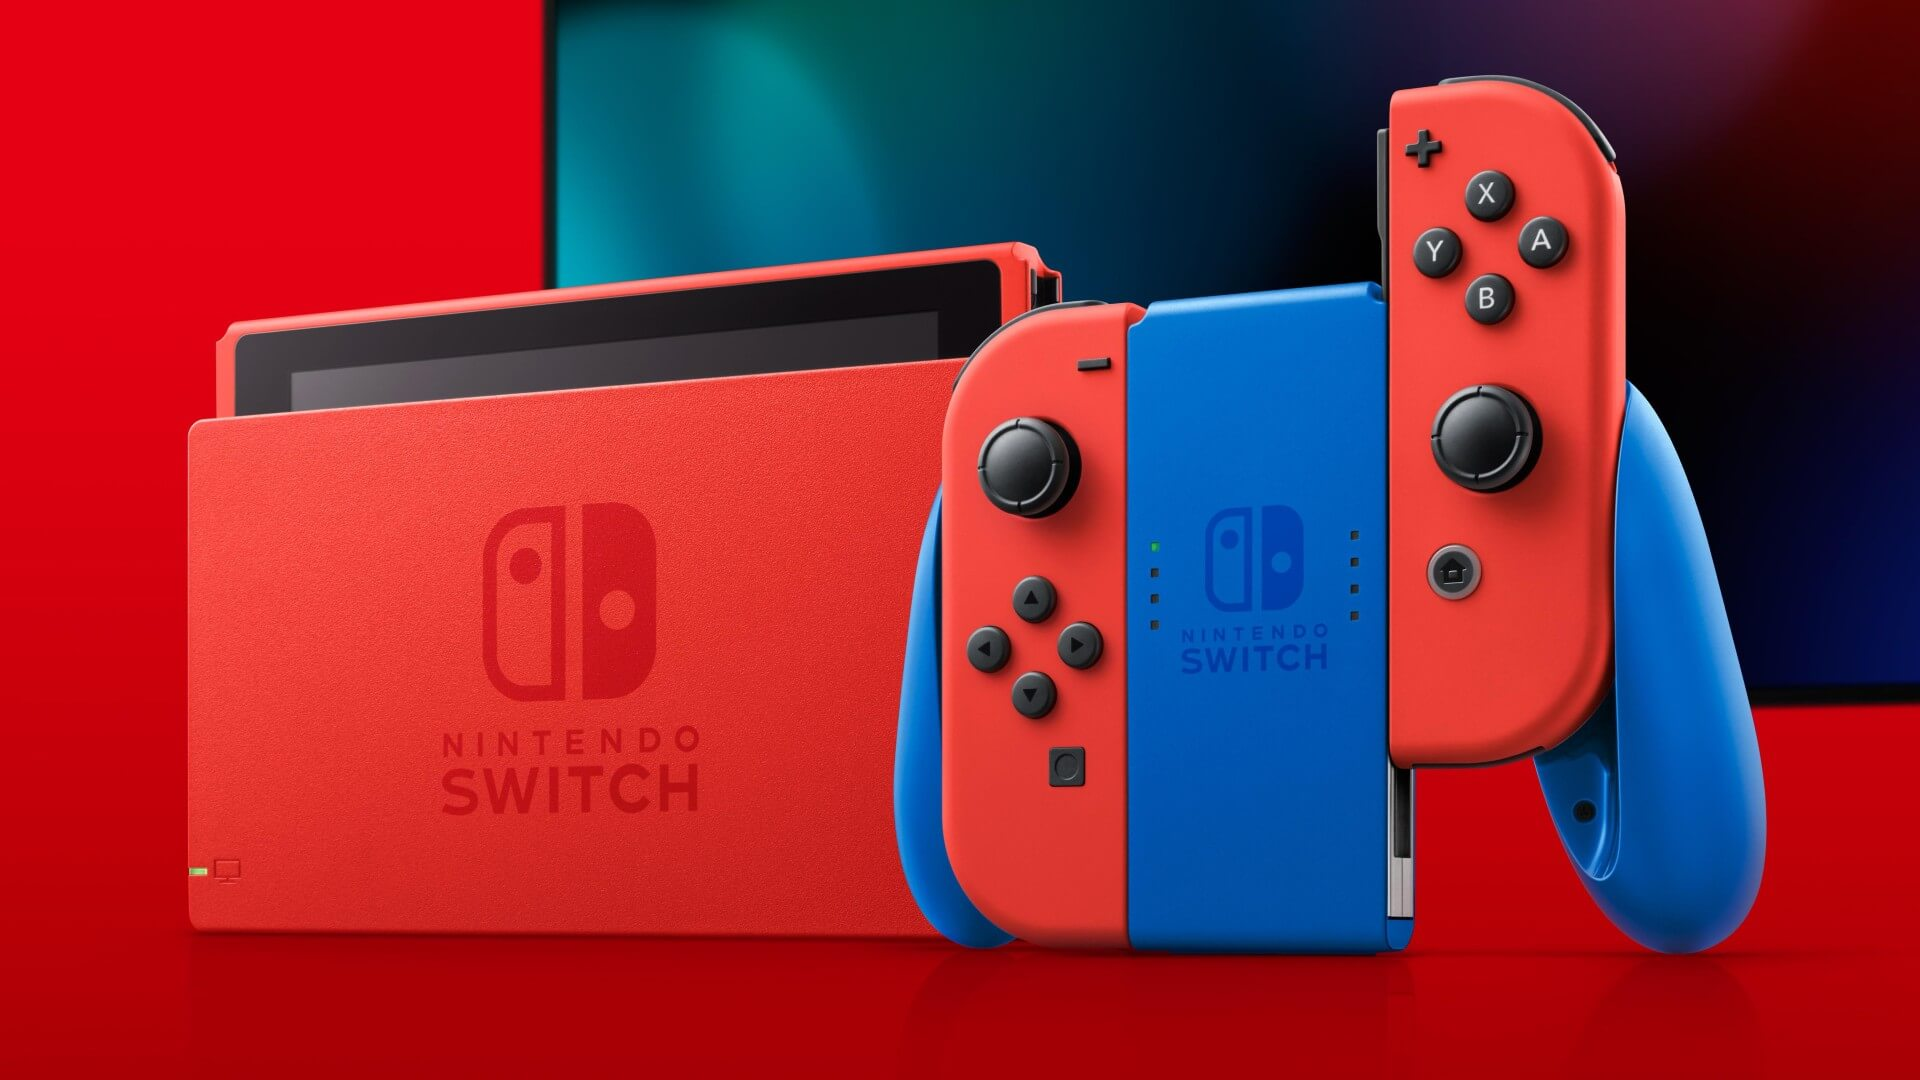 Nintendo Switch New Model with Bigger Display in 2021